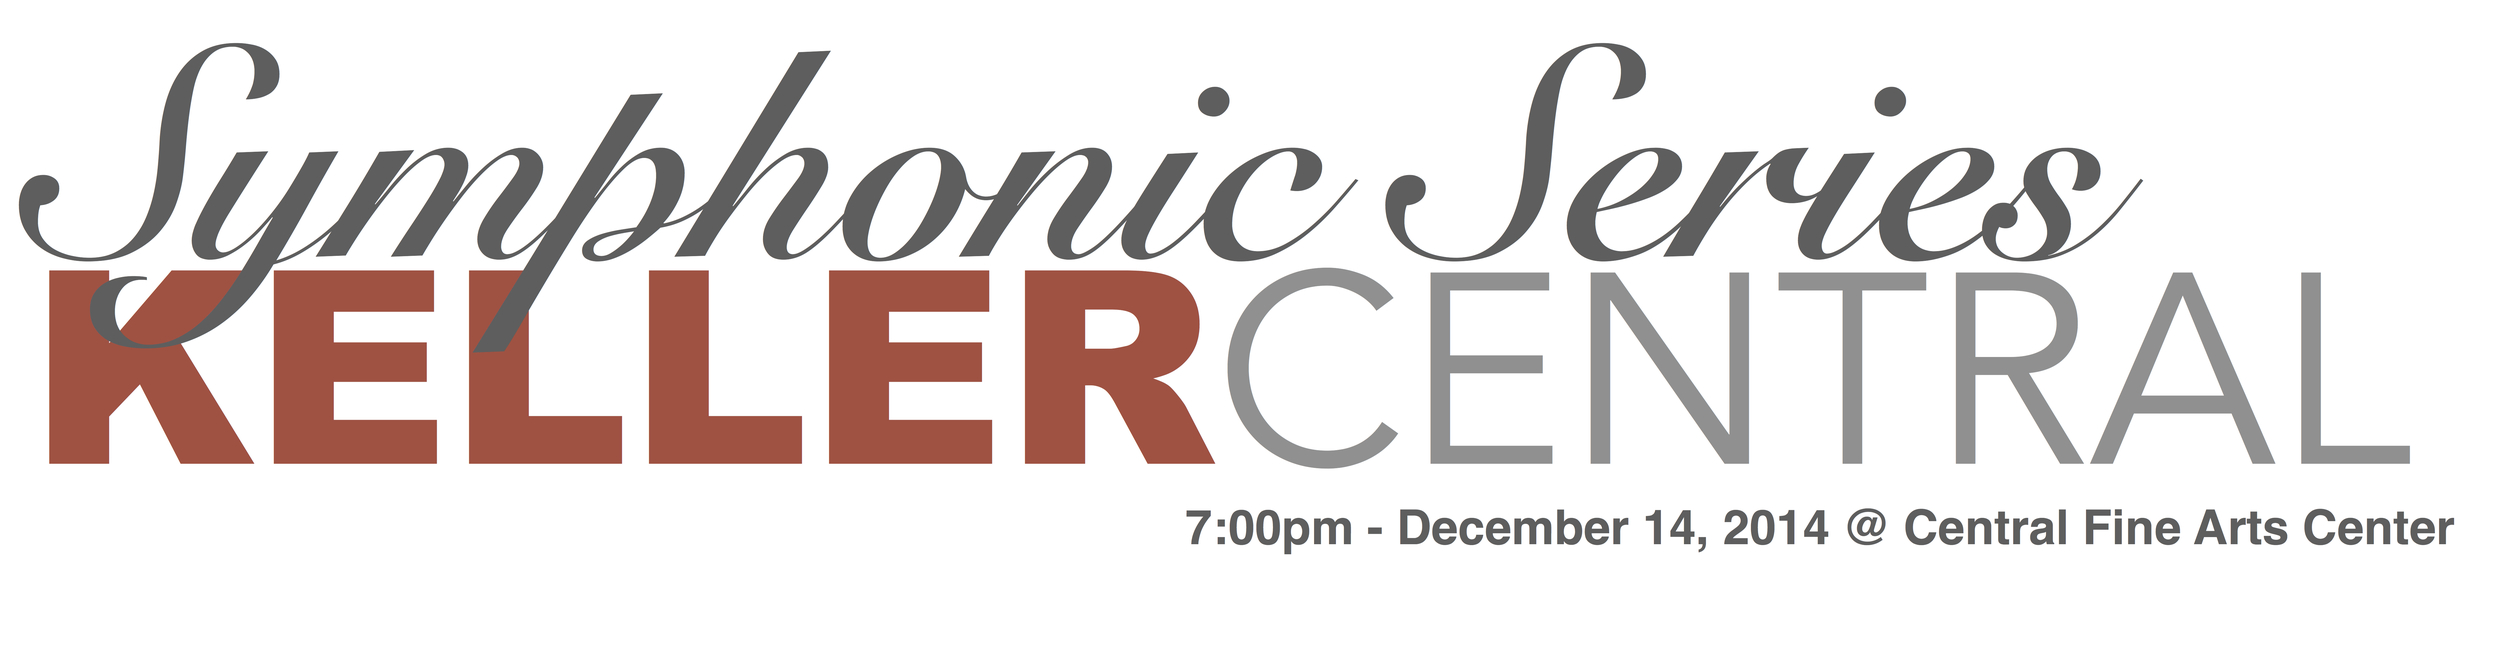 Join the KC Band for their Winter Concert! First of many concerts this year!